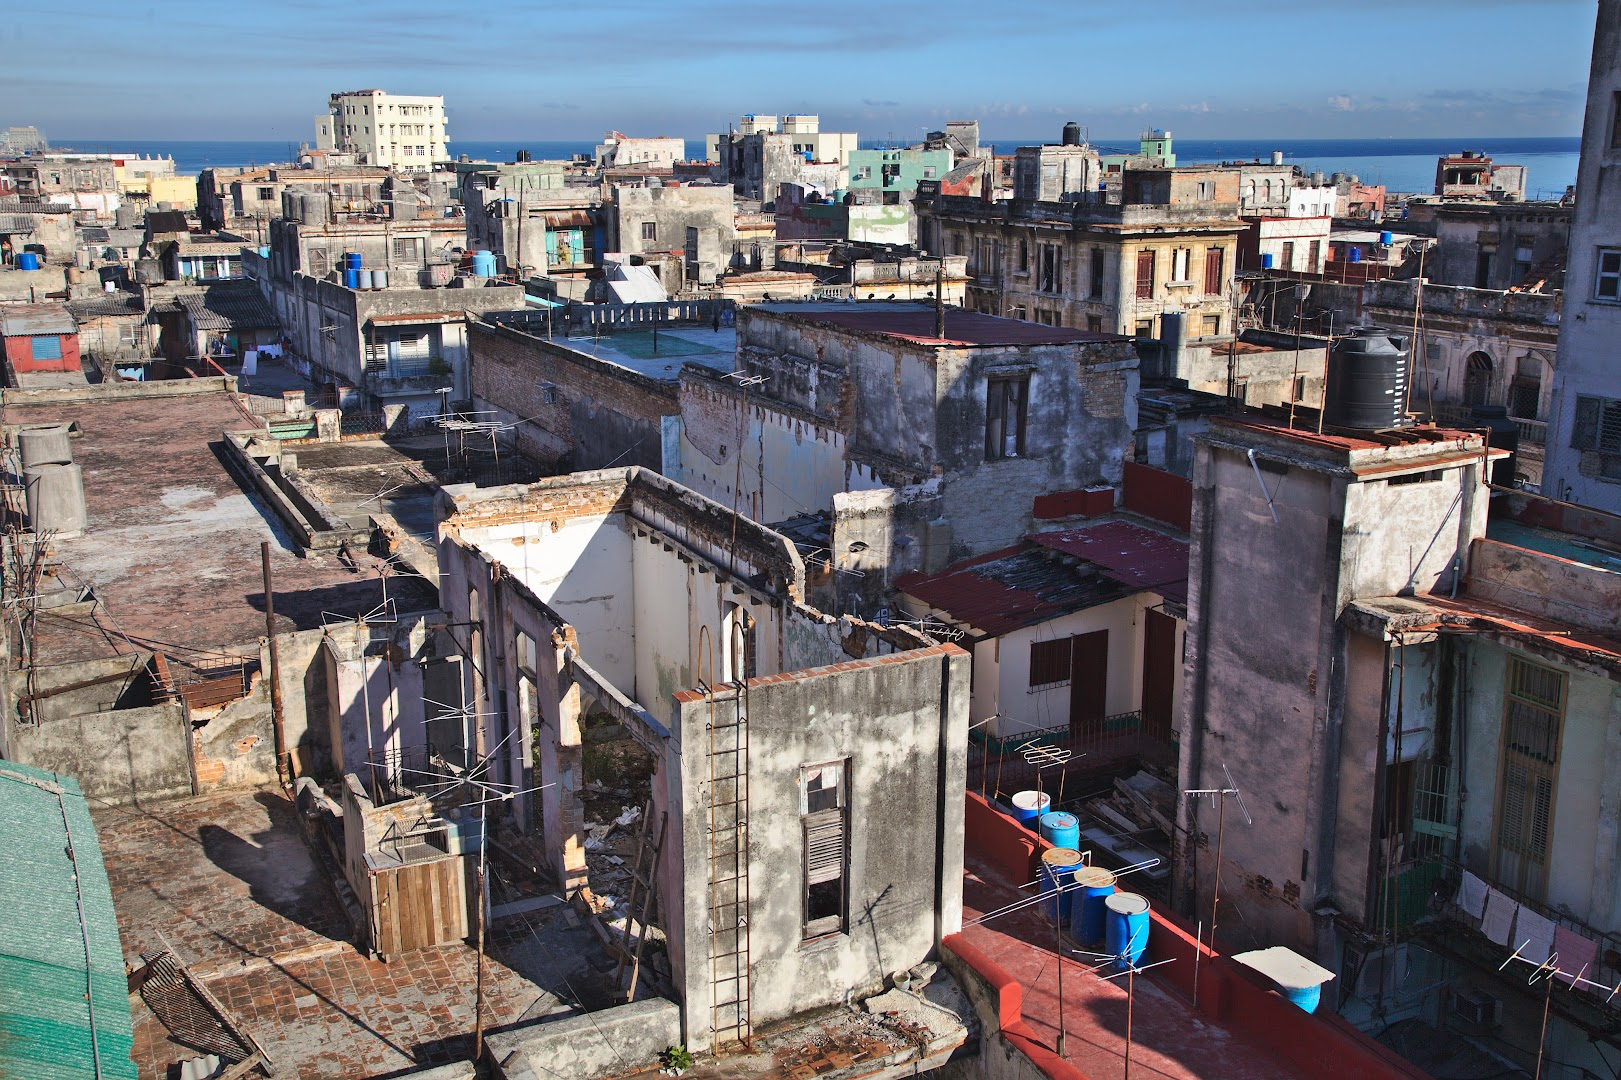 The roofs of Havana